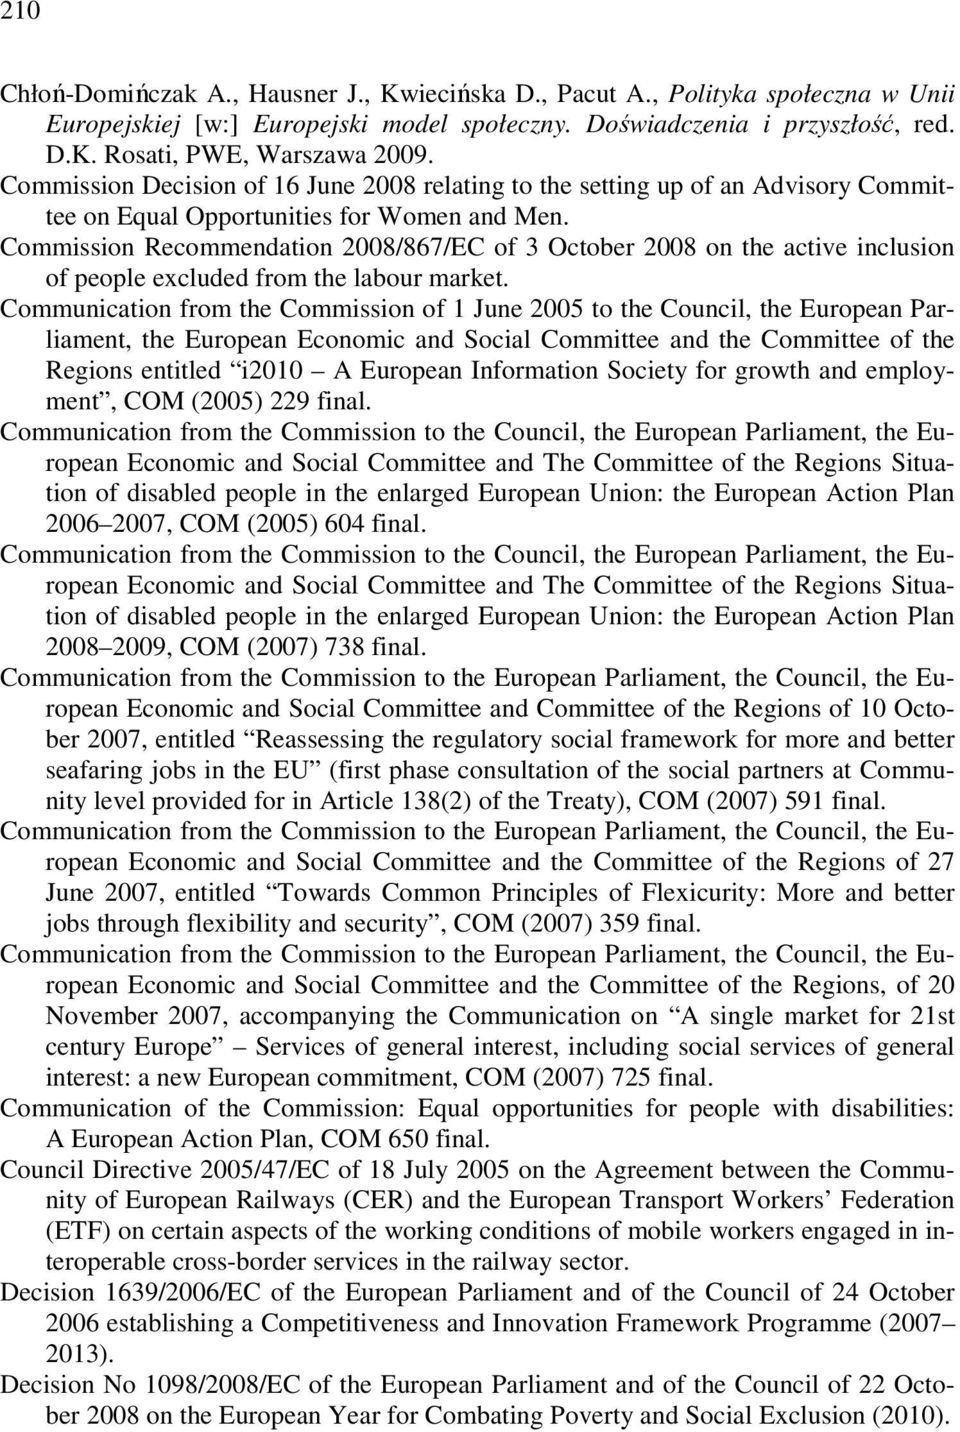 Commission Recommendation 2008/867/EC of 3 October 2008 on the active inclusion of people excluded from the labour market.